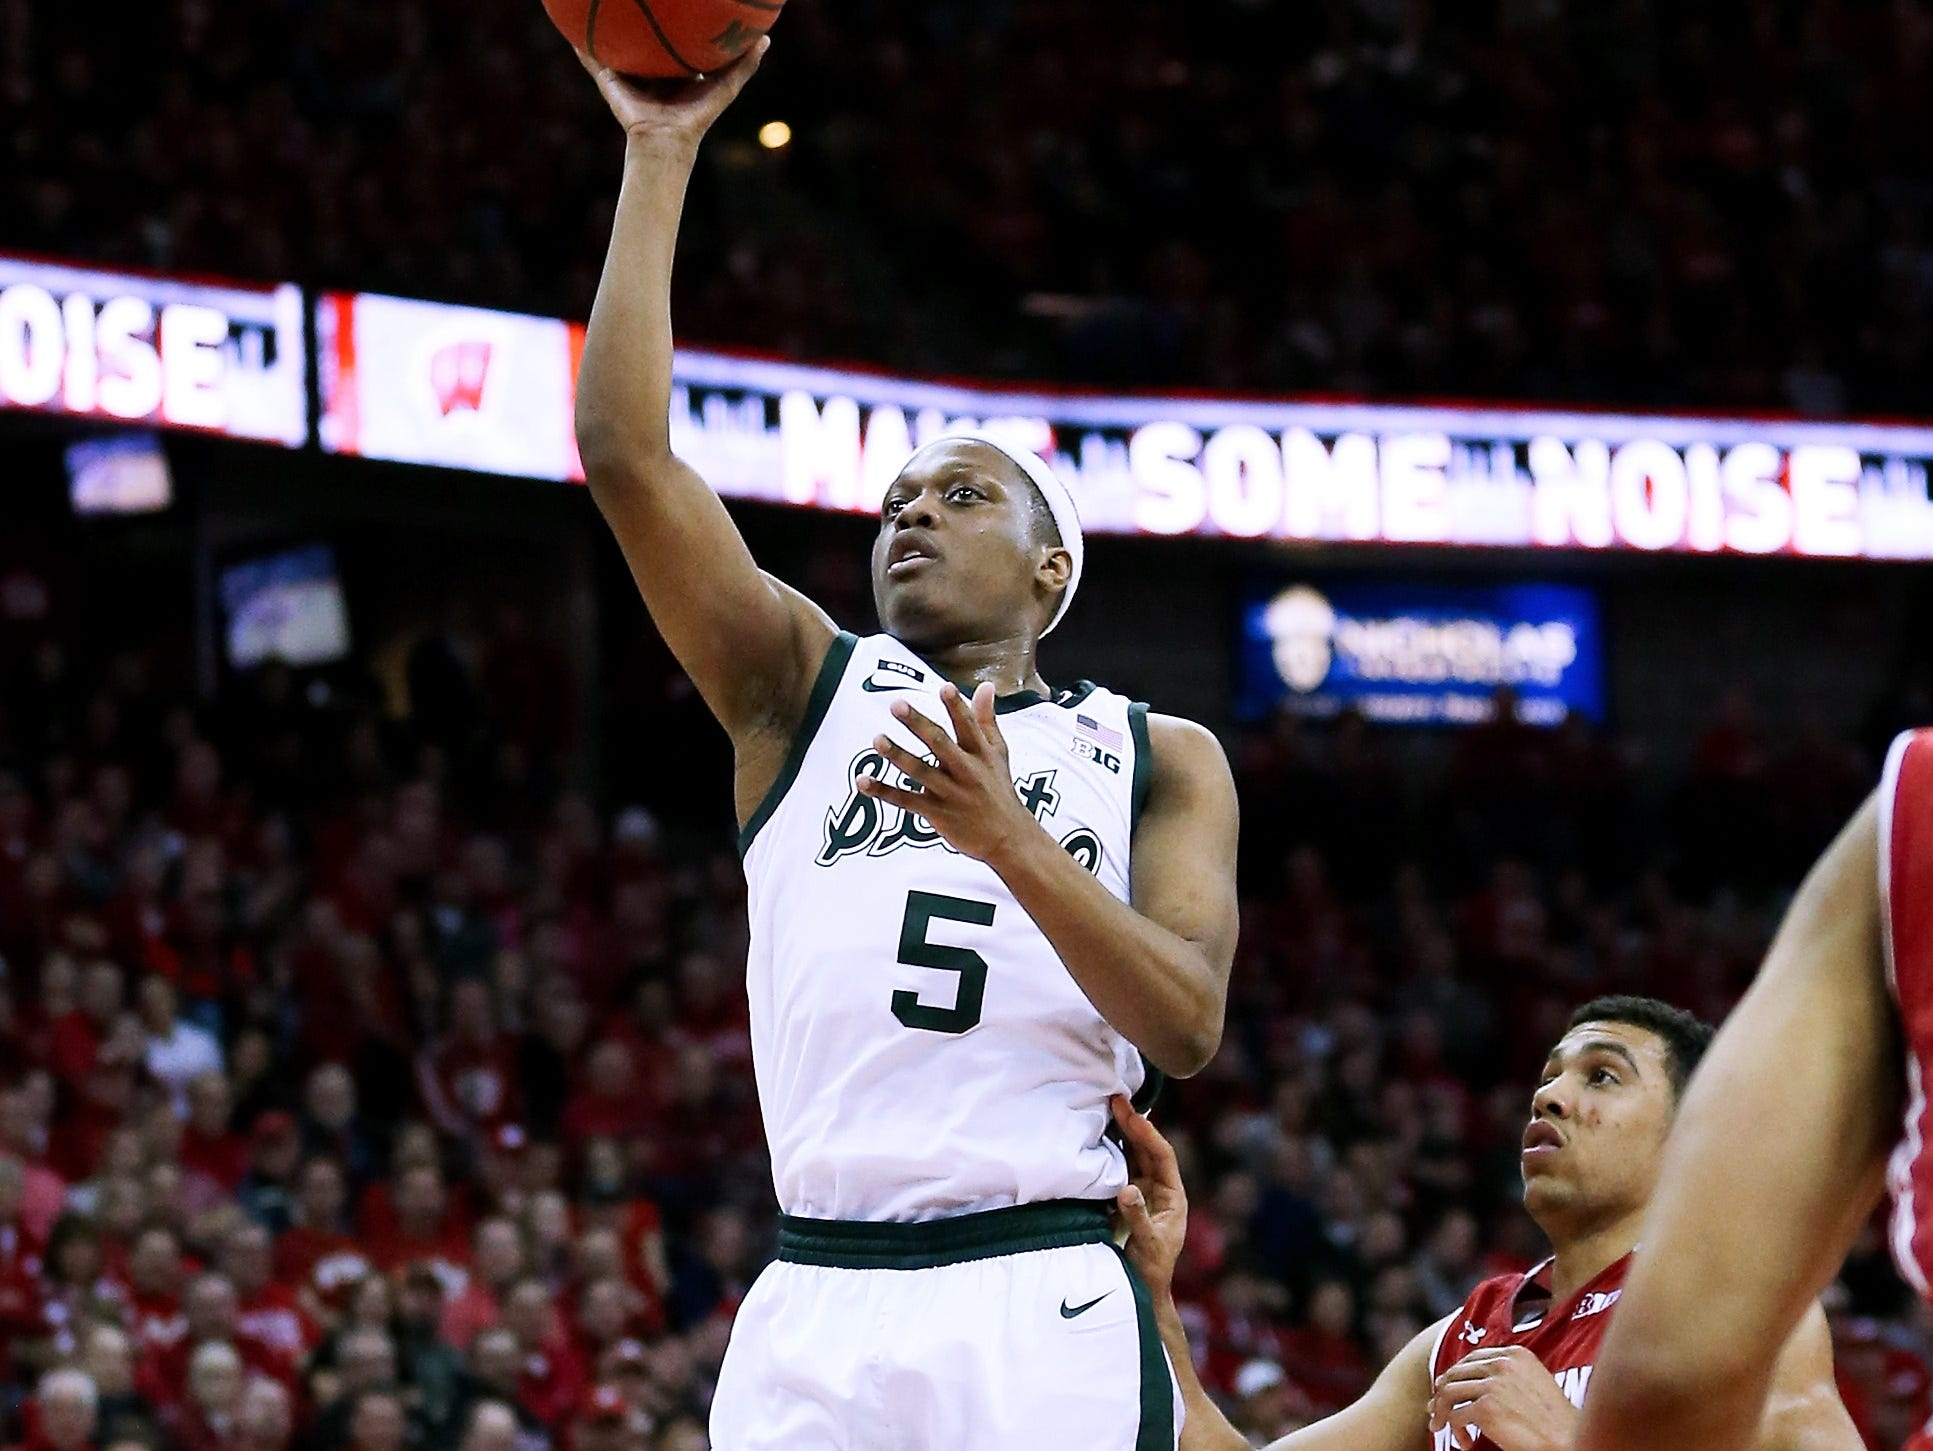 Cassius Winston #5 of the Michigan State Spartans attempts a shot in the second half against the Wisconsin Badgers at the Kohl Center on February 12, 2019 in Madison, Wisconsin.